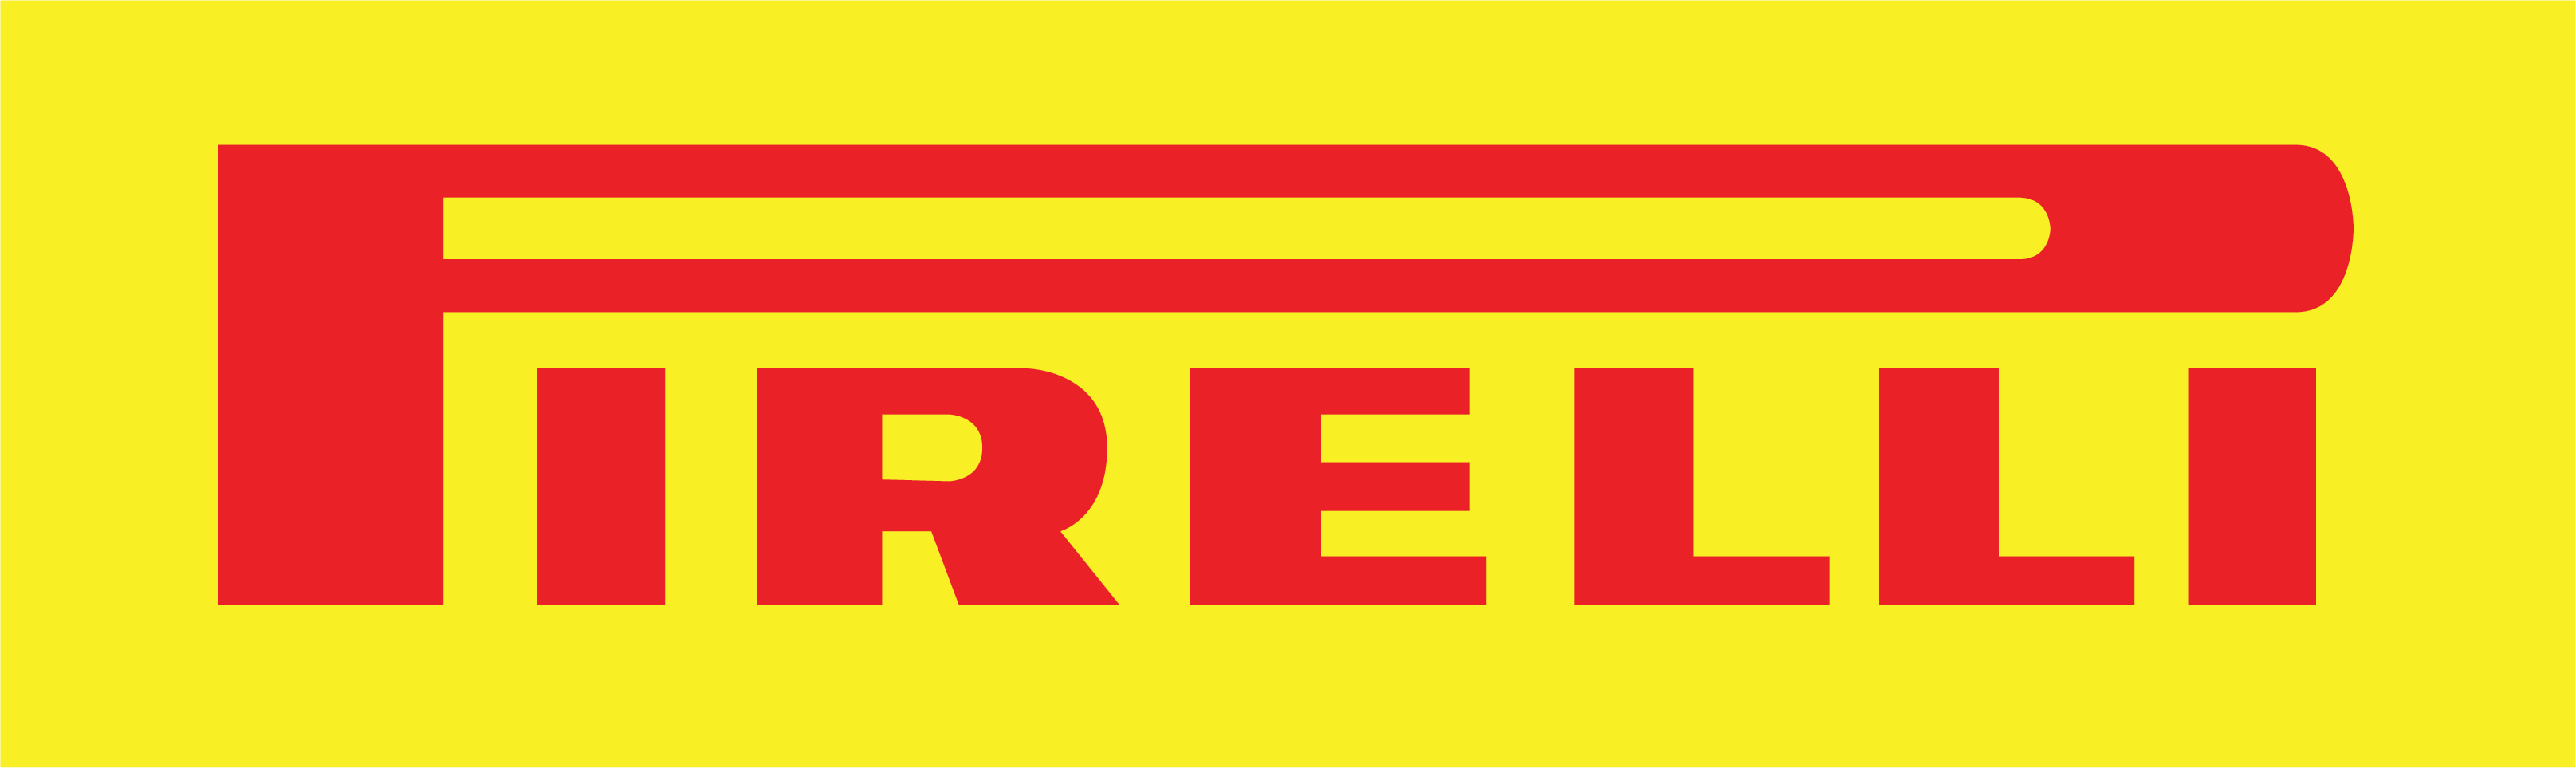 https://clubeabtyres.pt/wp-content/uploads/2020/01/pirelli-1.png